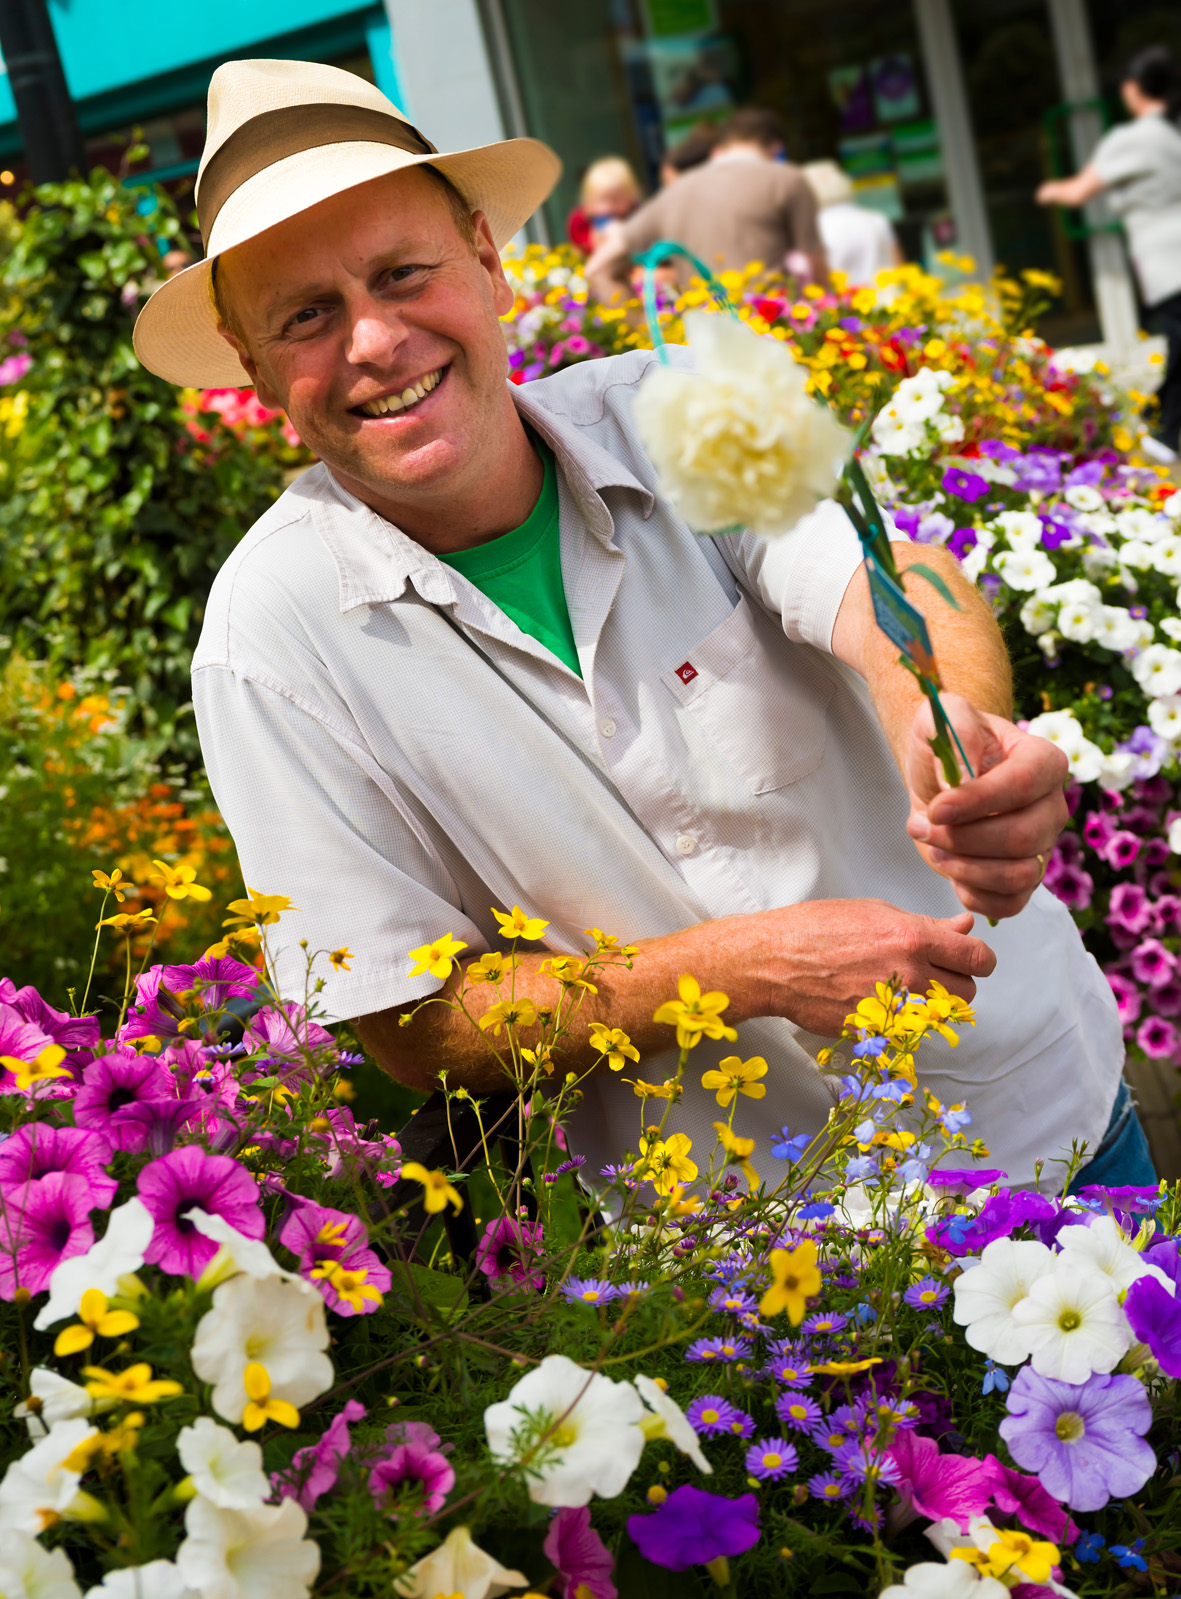 Joe Swift attends Oldham Flower Festival